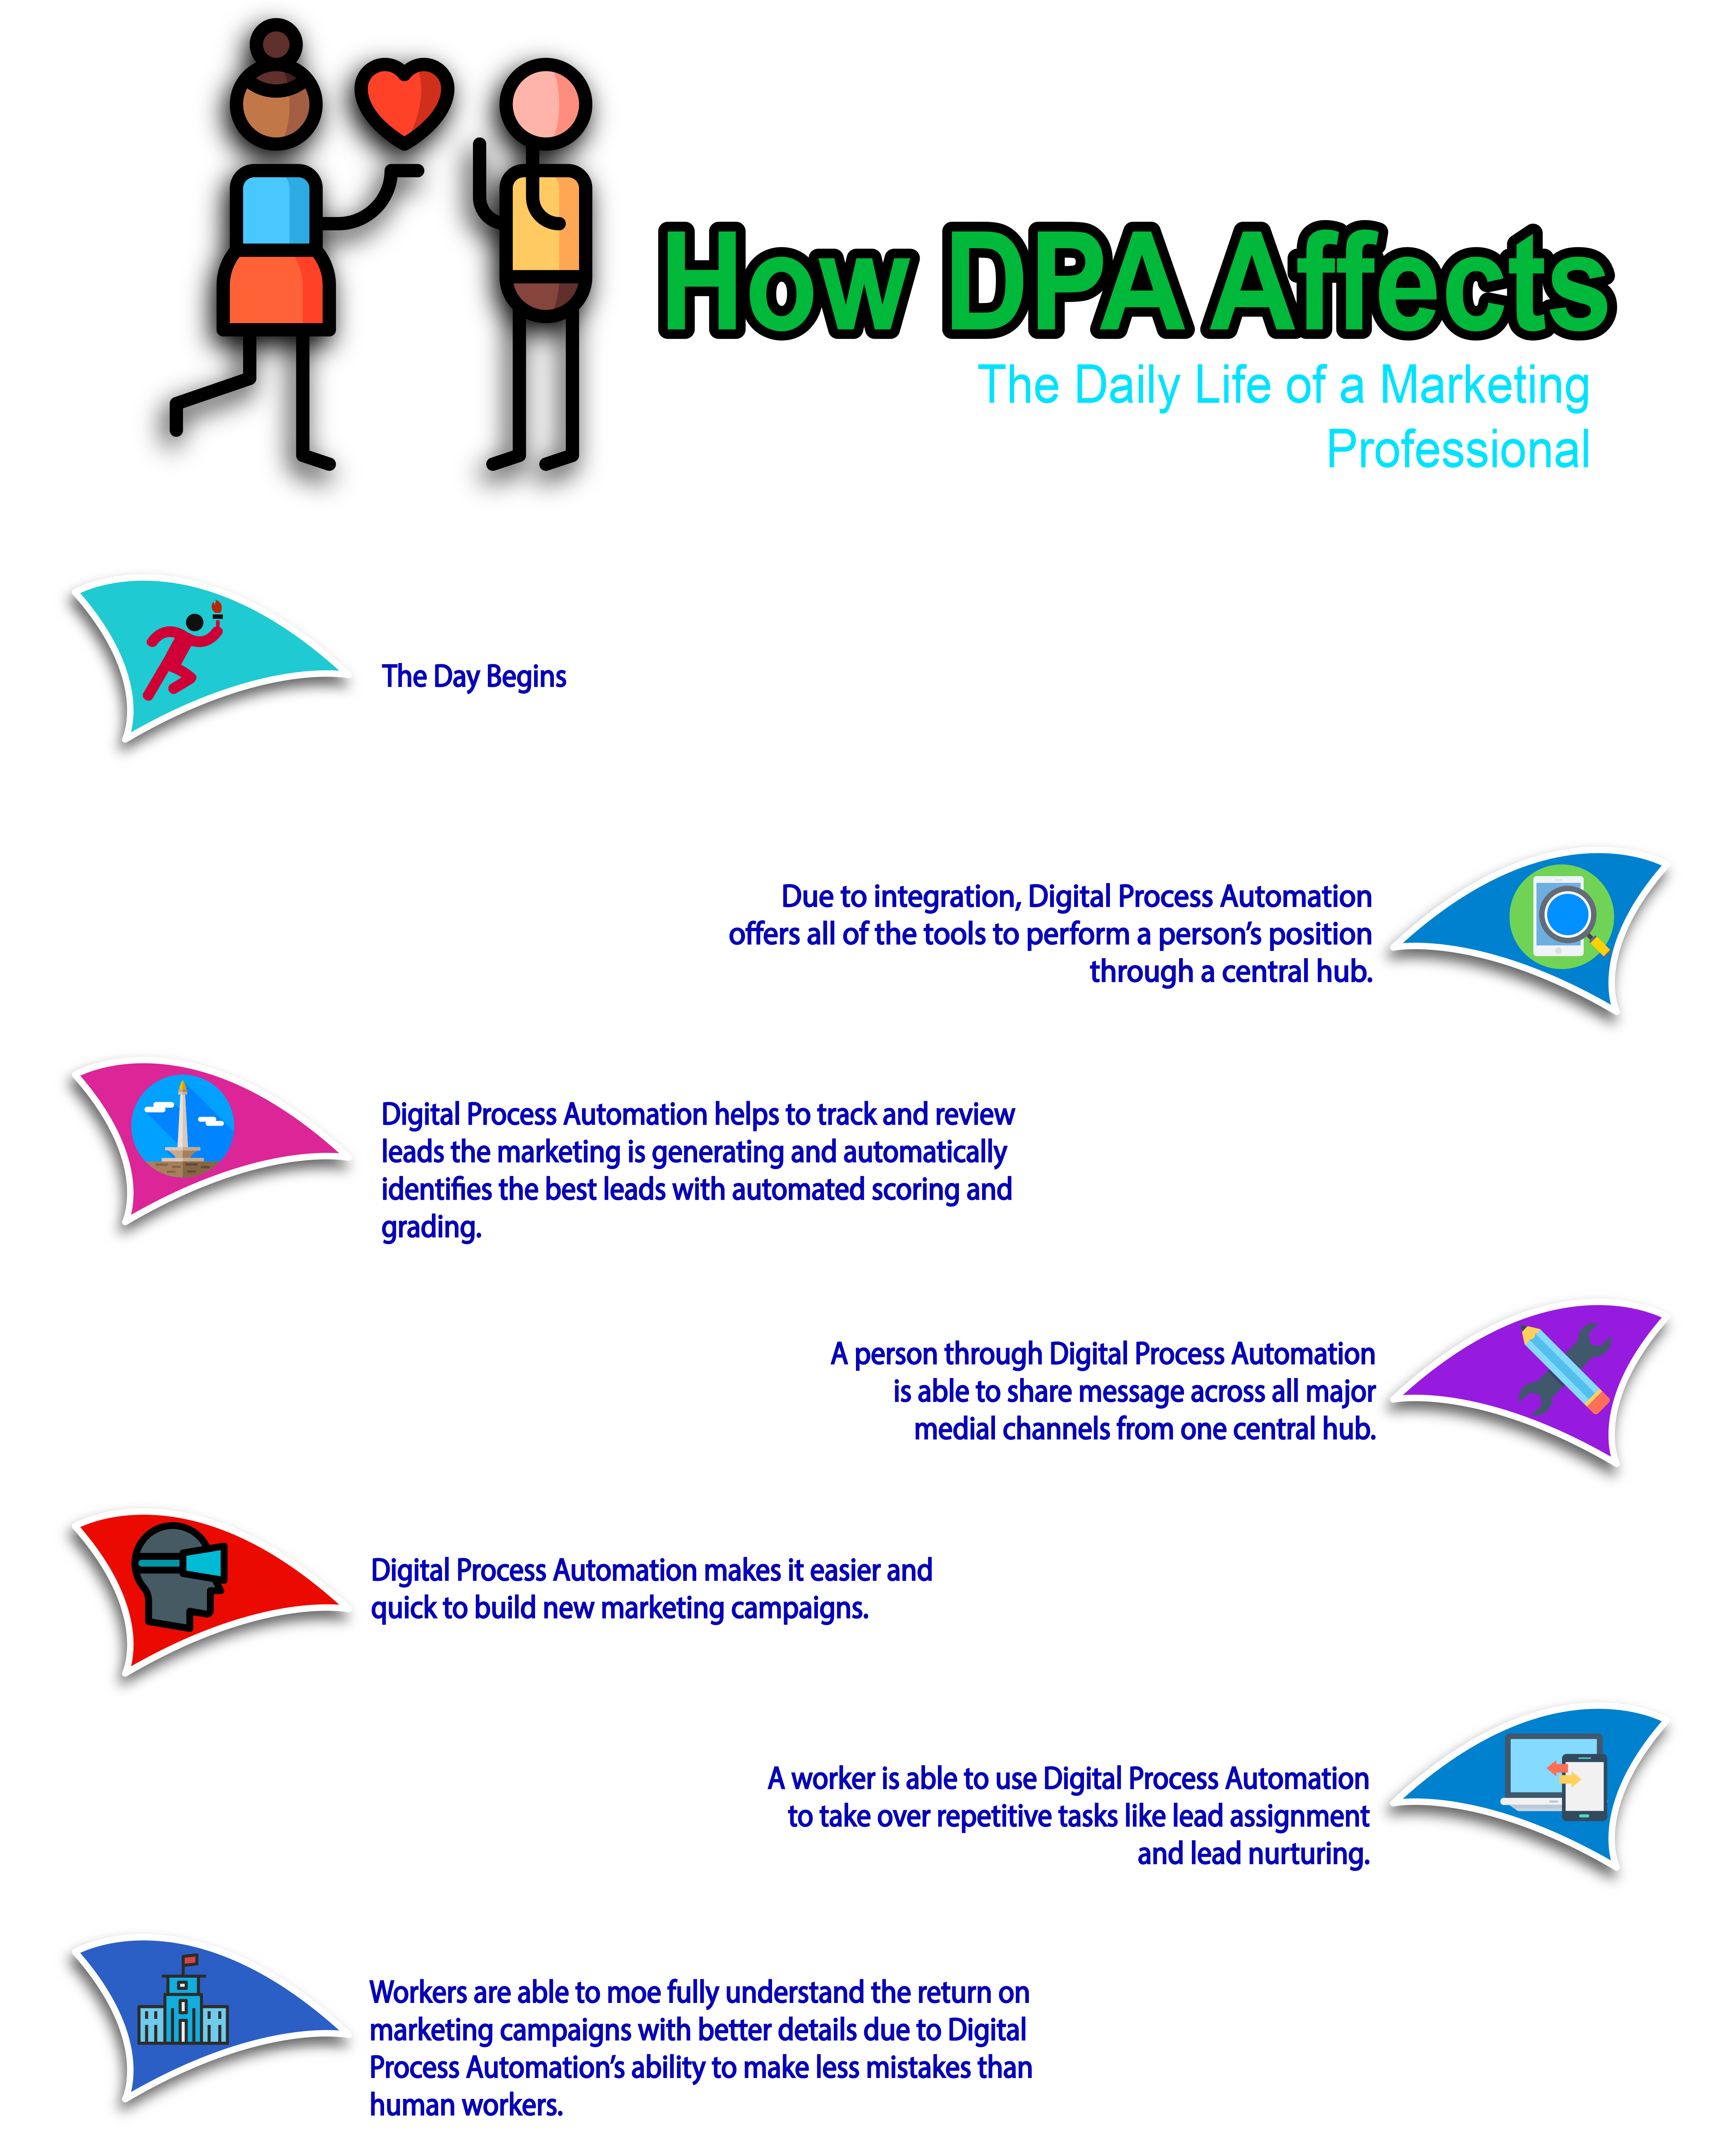 Fig 4, How DPA Affects (1)